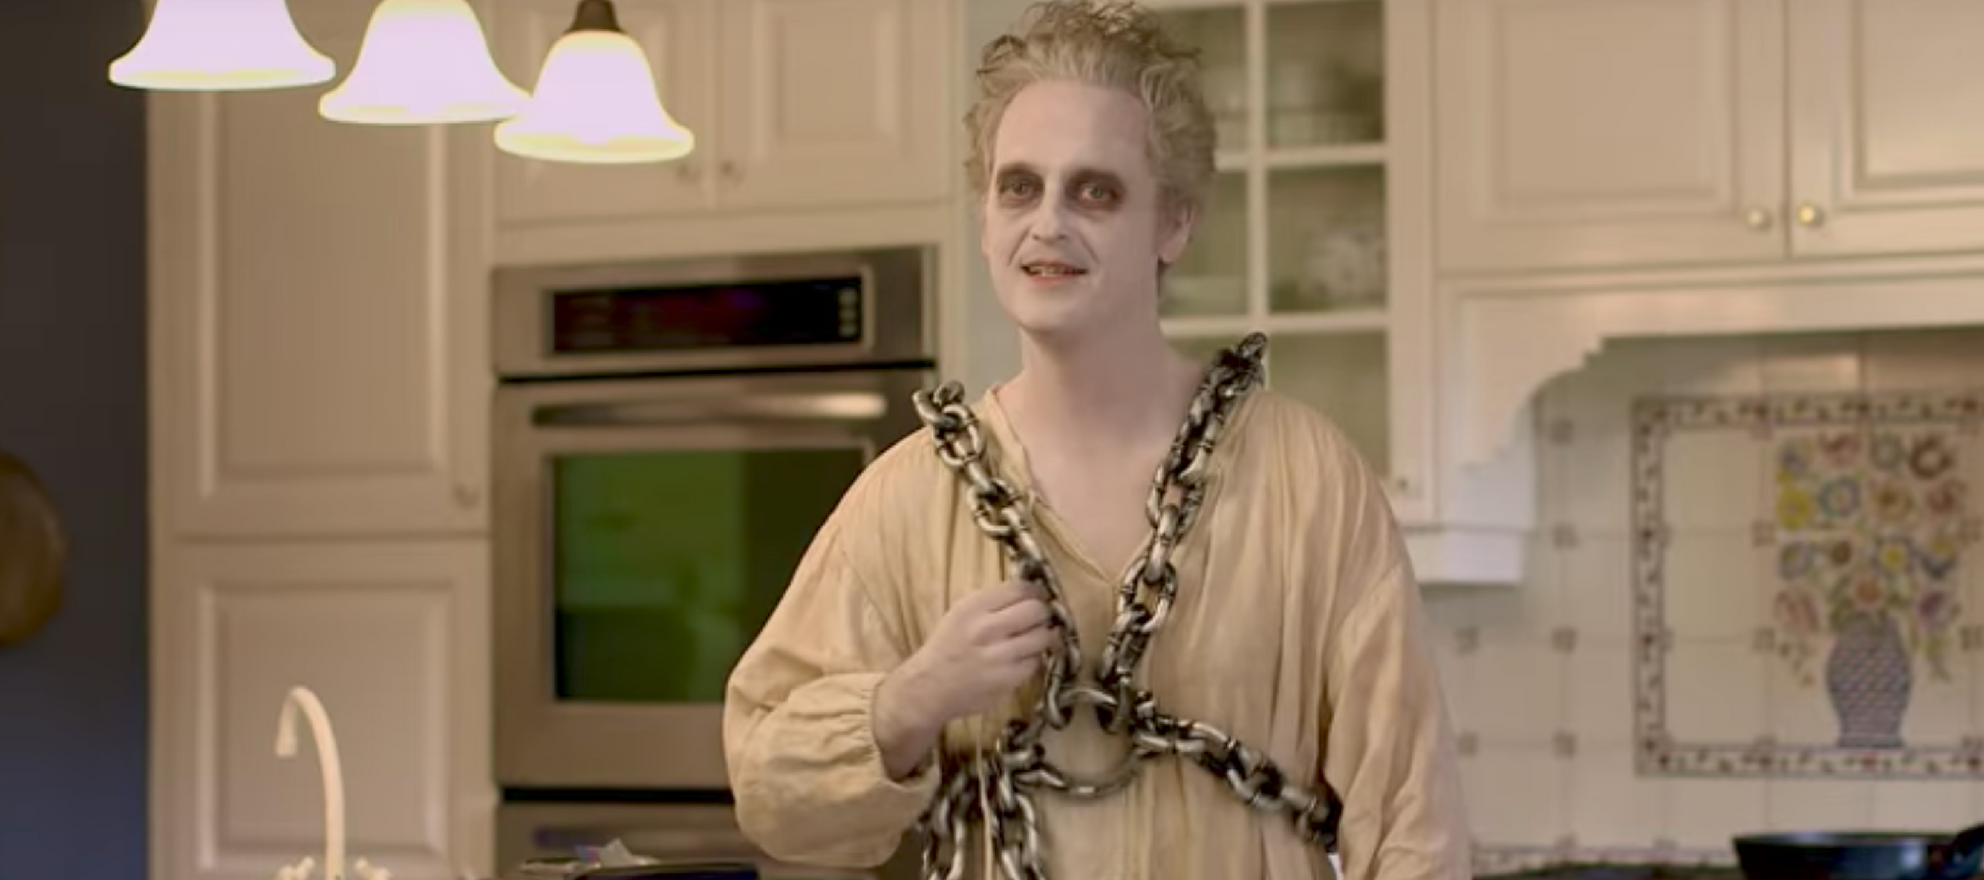 Sassy ghost steals the show in BuzzBuzzHome's new Halloween ad